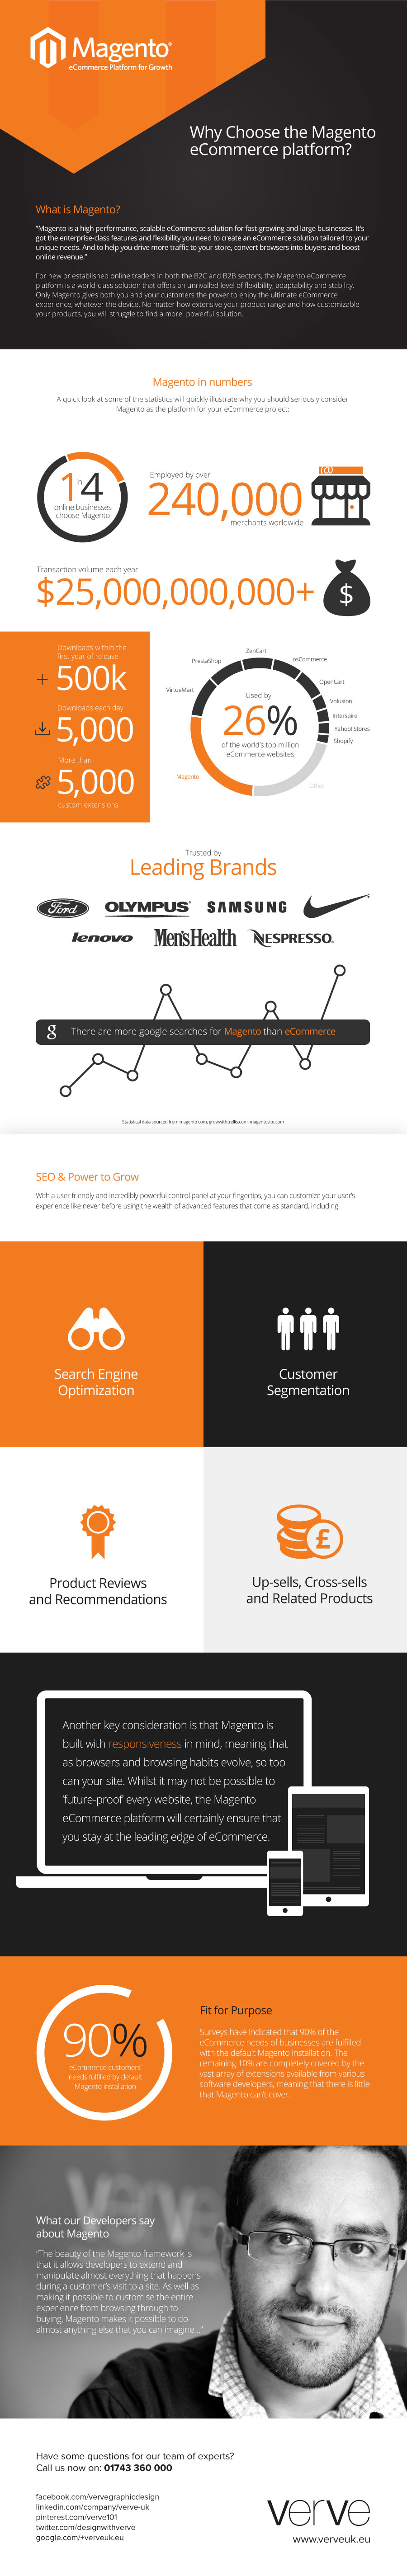 Why Choose Magento Infographic